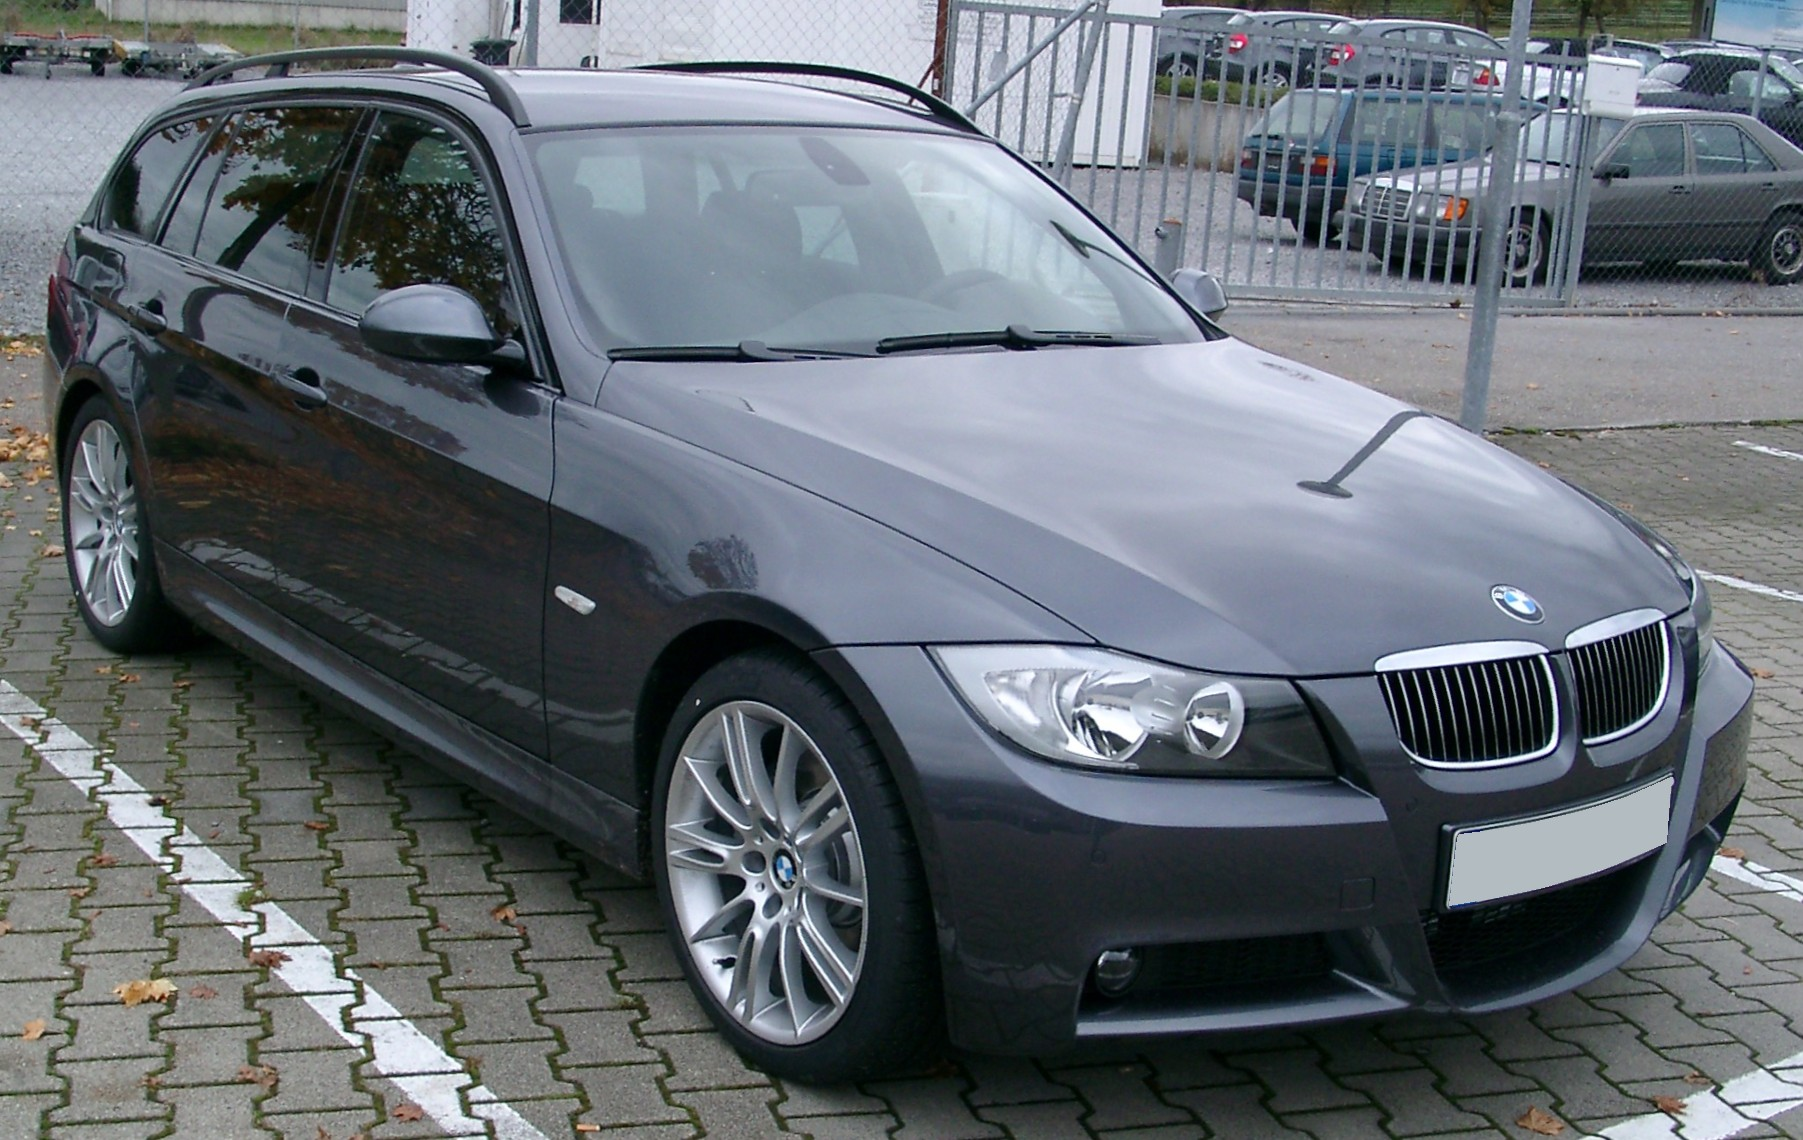 Bmw E90 Wiki >> File:BMW E90 Touring front 20071104.jpg - Wikimedia Commons